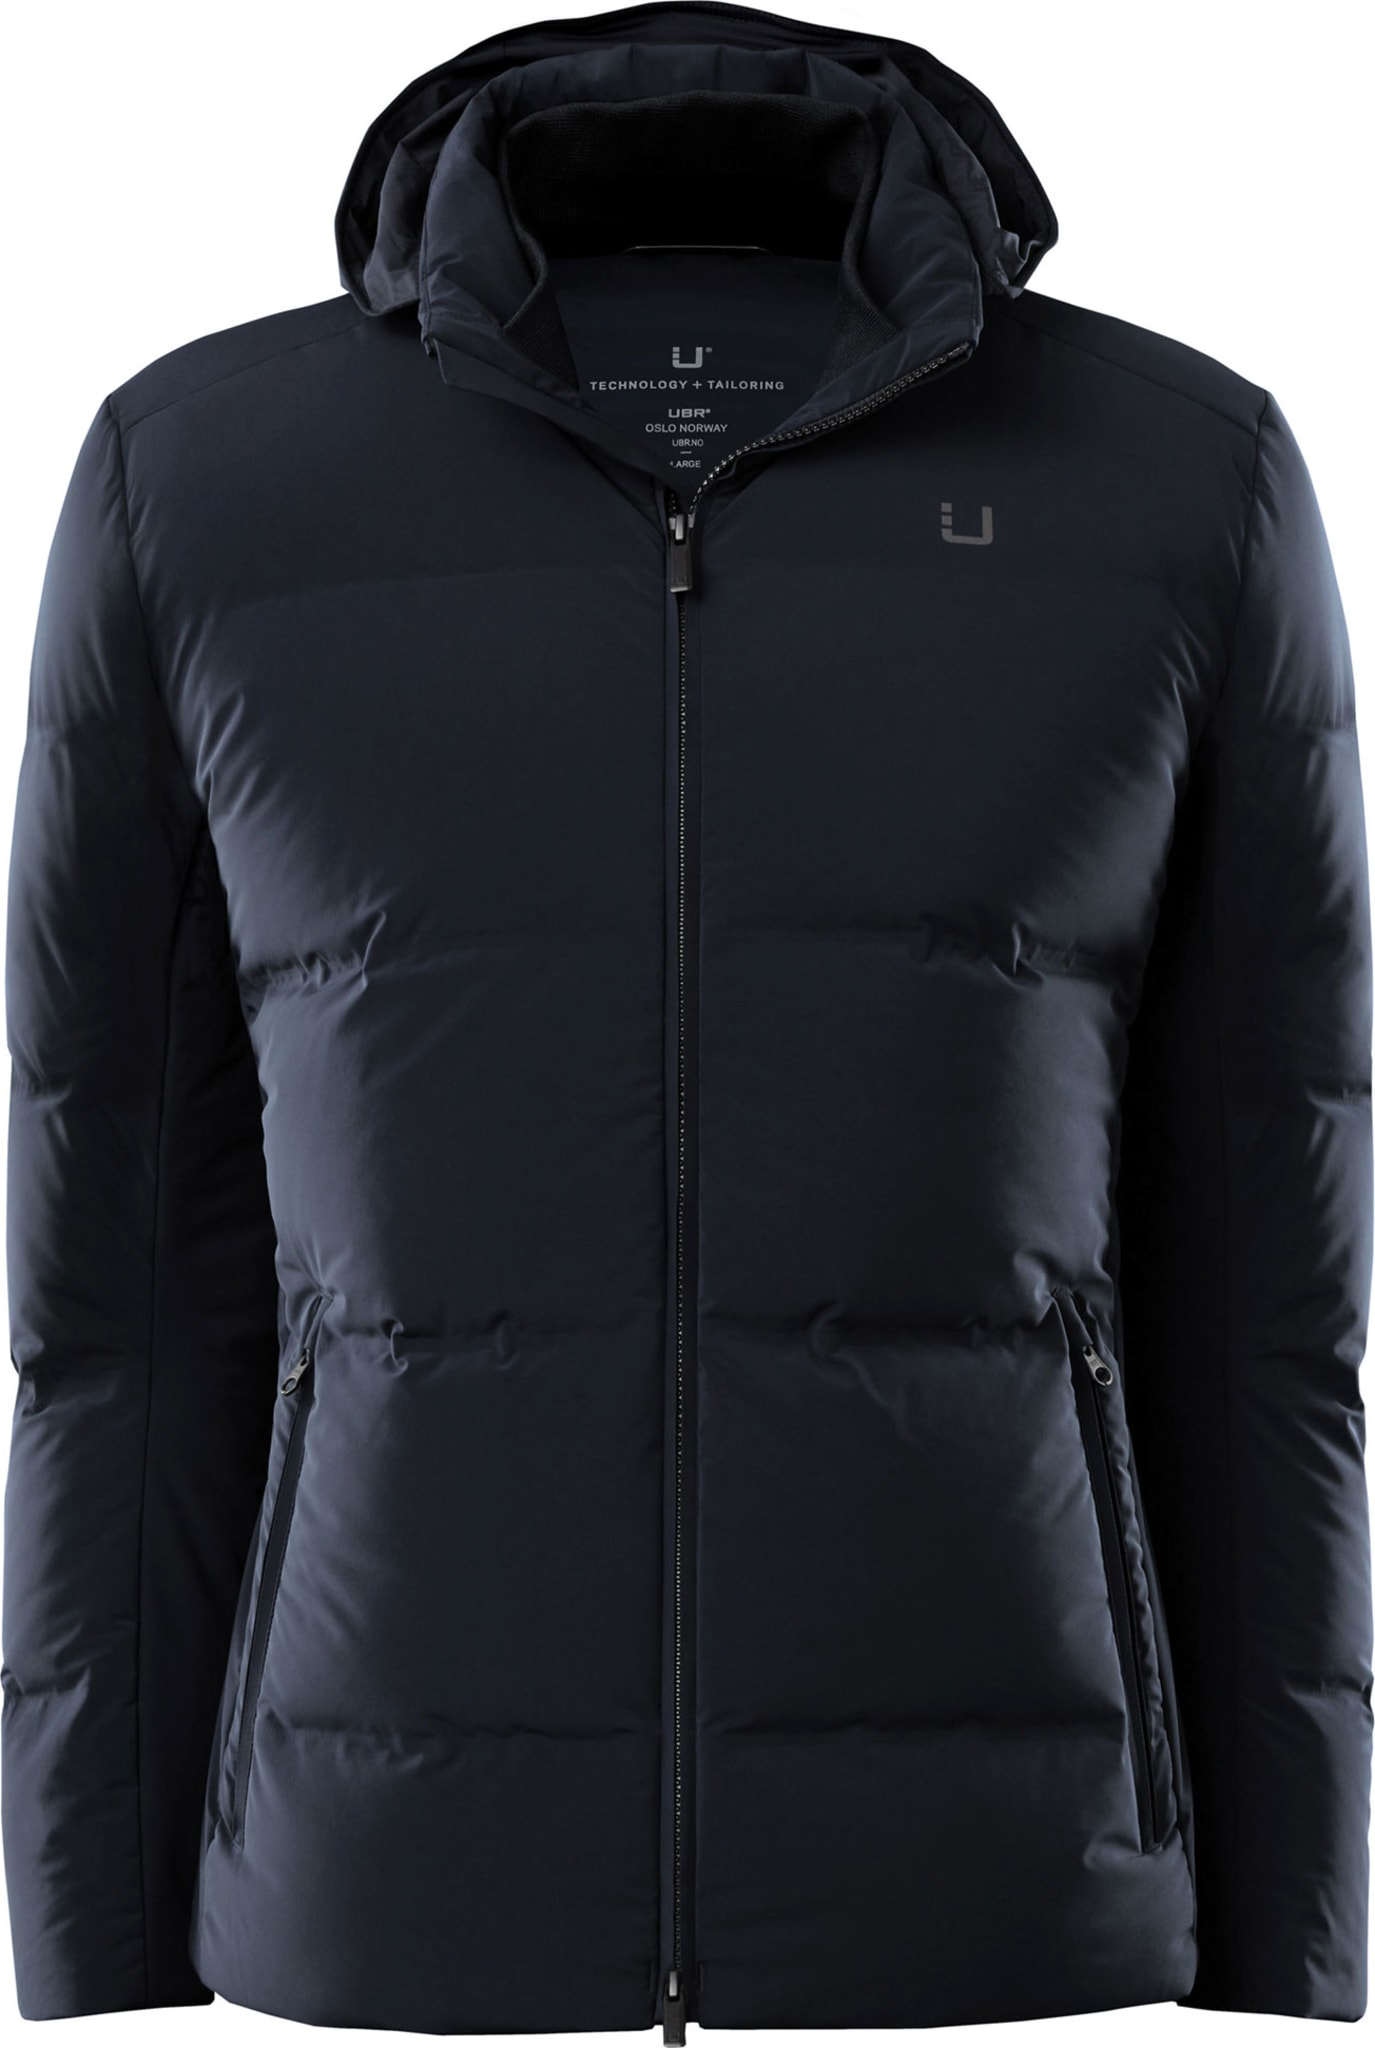 Bolt XP Down Jacket